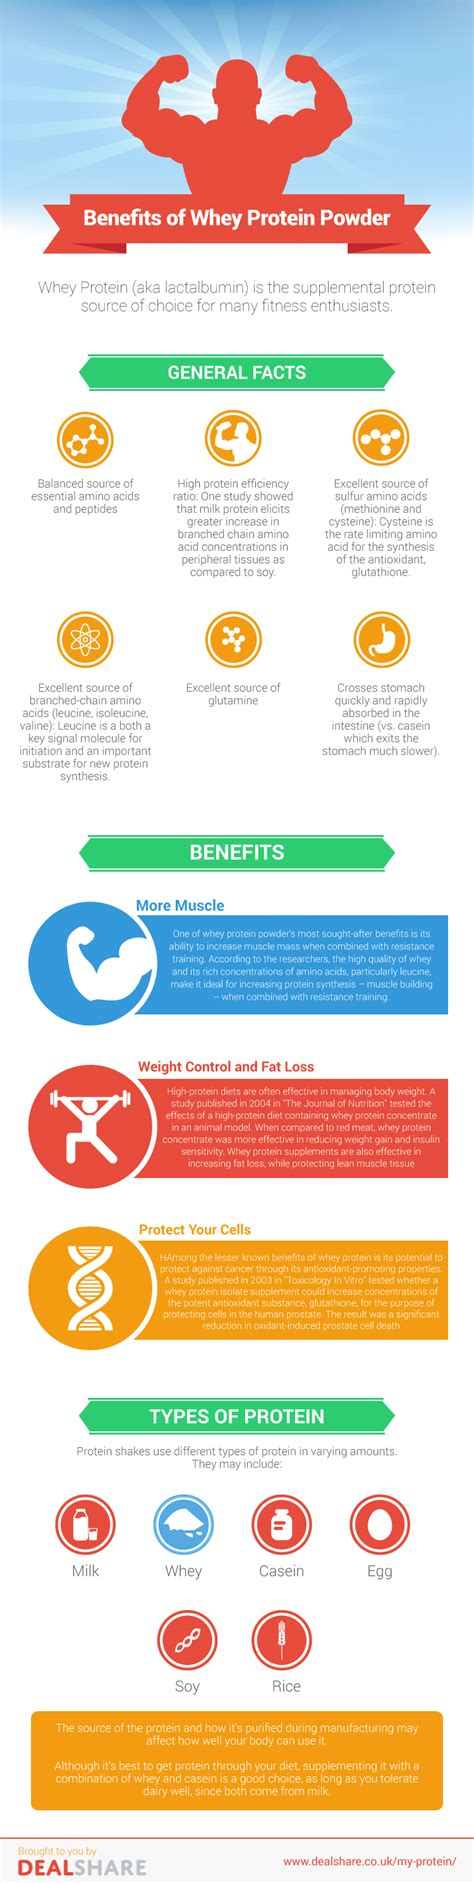 d protein powder benefits why whey powder is the best protein supplement infographic